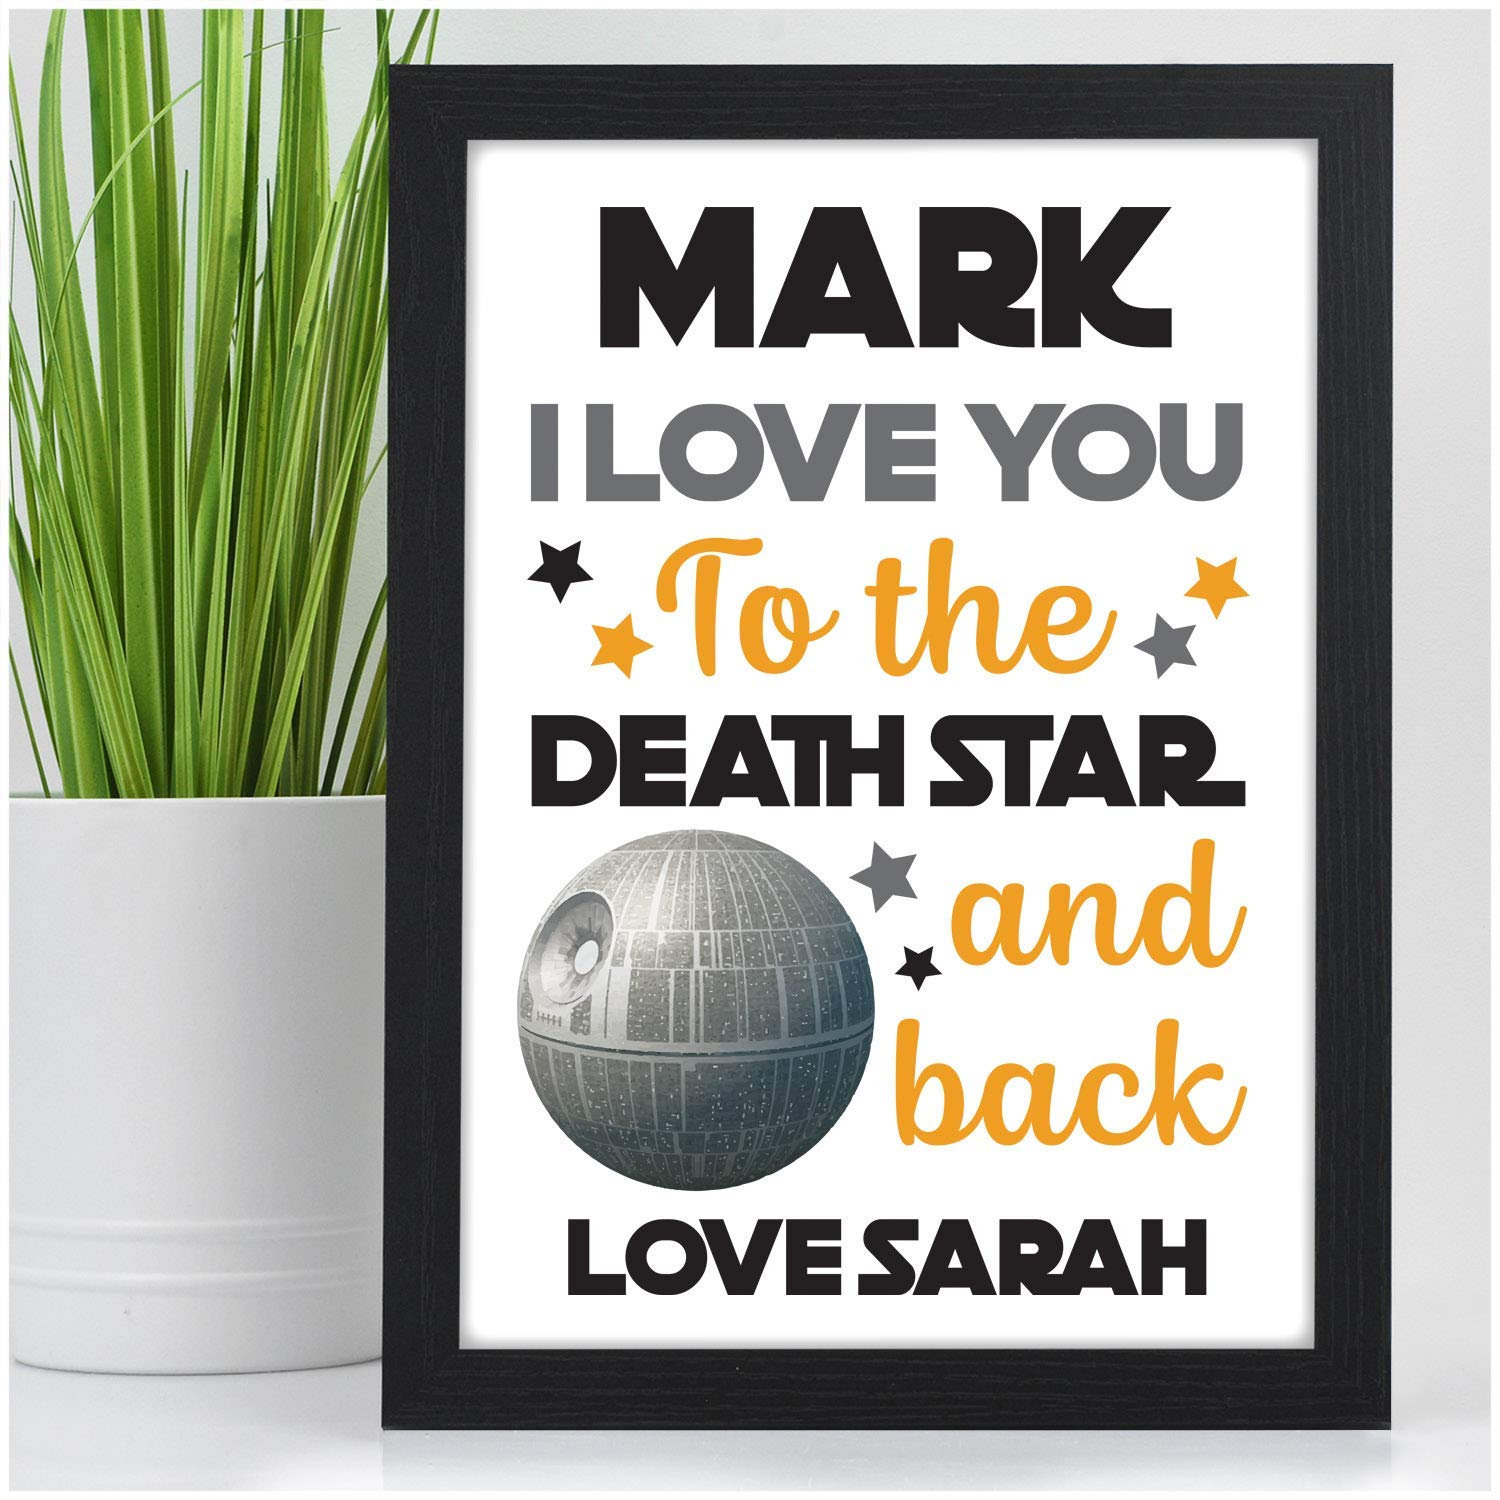 Custom Print Gifts for Her Birthday Husband Girlfriend Personalised Sci Fi Valentines Day Boyfriend or Partner Him Engagement or Wedding Anniversary Gifts for Couples ANY Occasion Wife